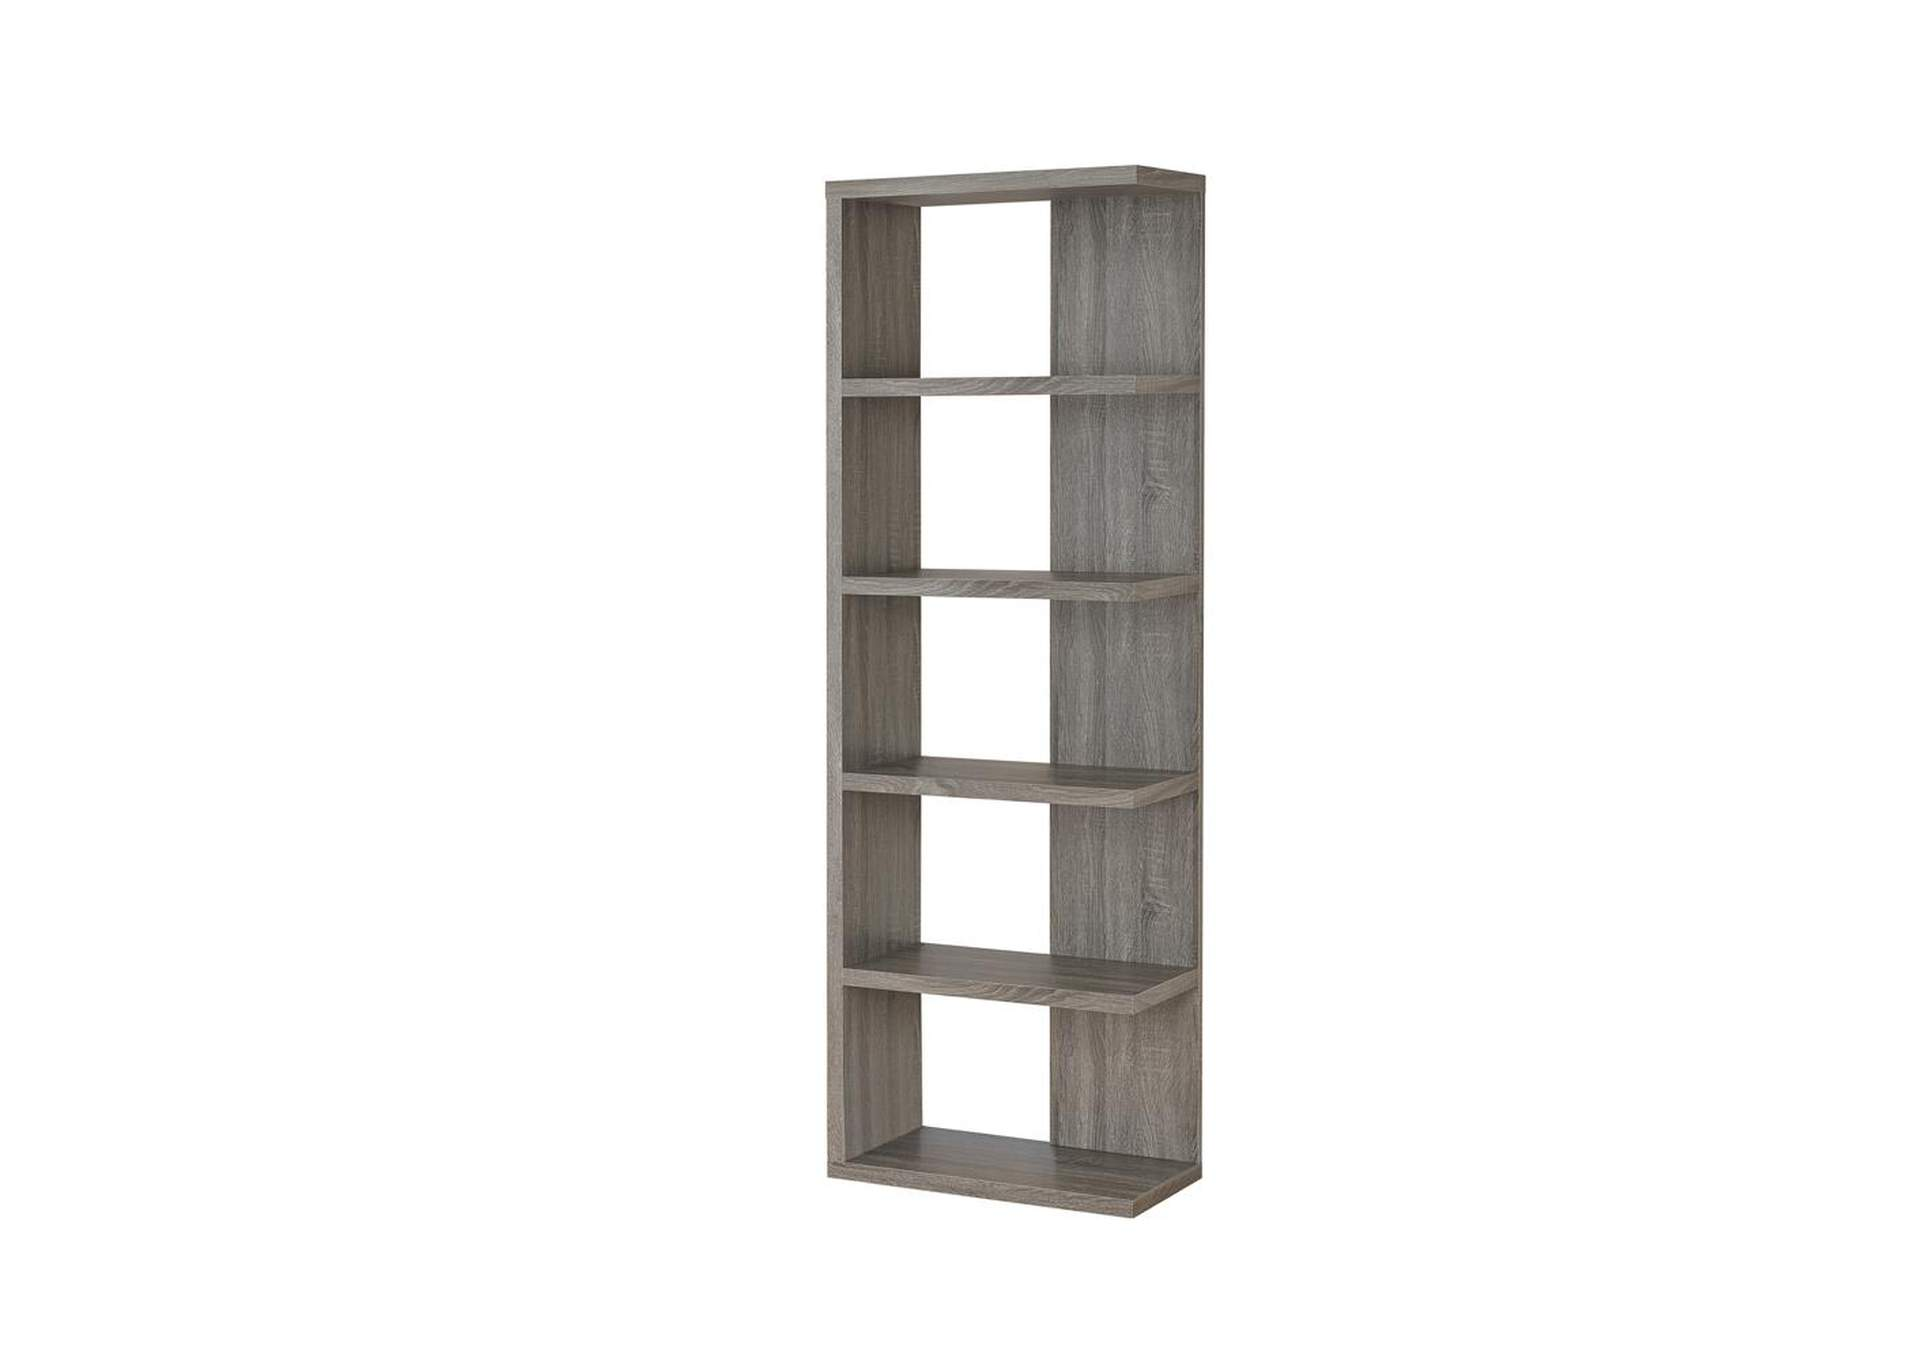 Weathered Grey Contemporary Weathered Grey Five-Shelf Bookcase,Coaster Furniture